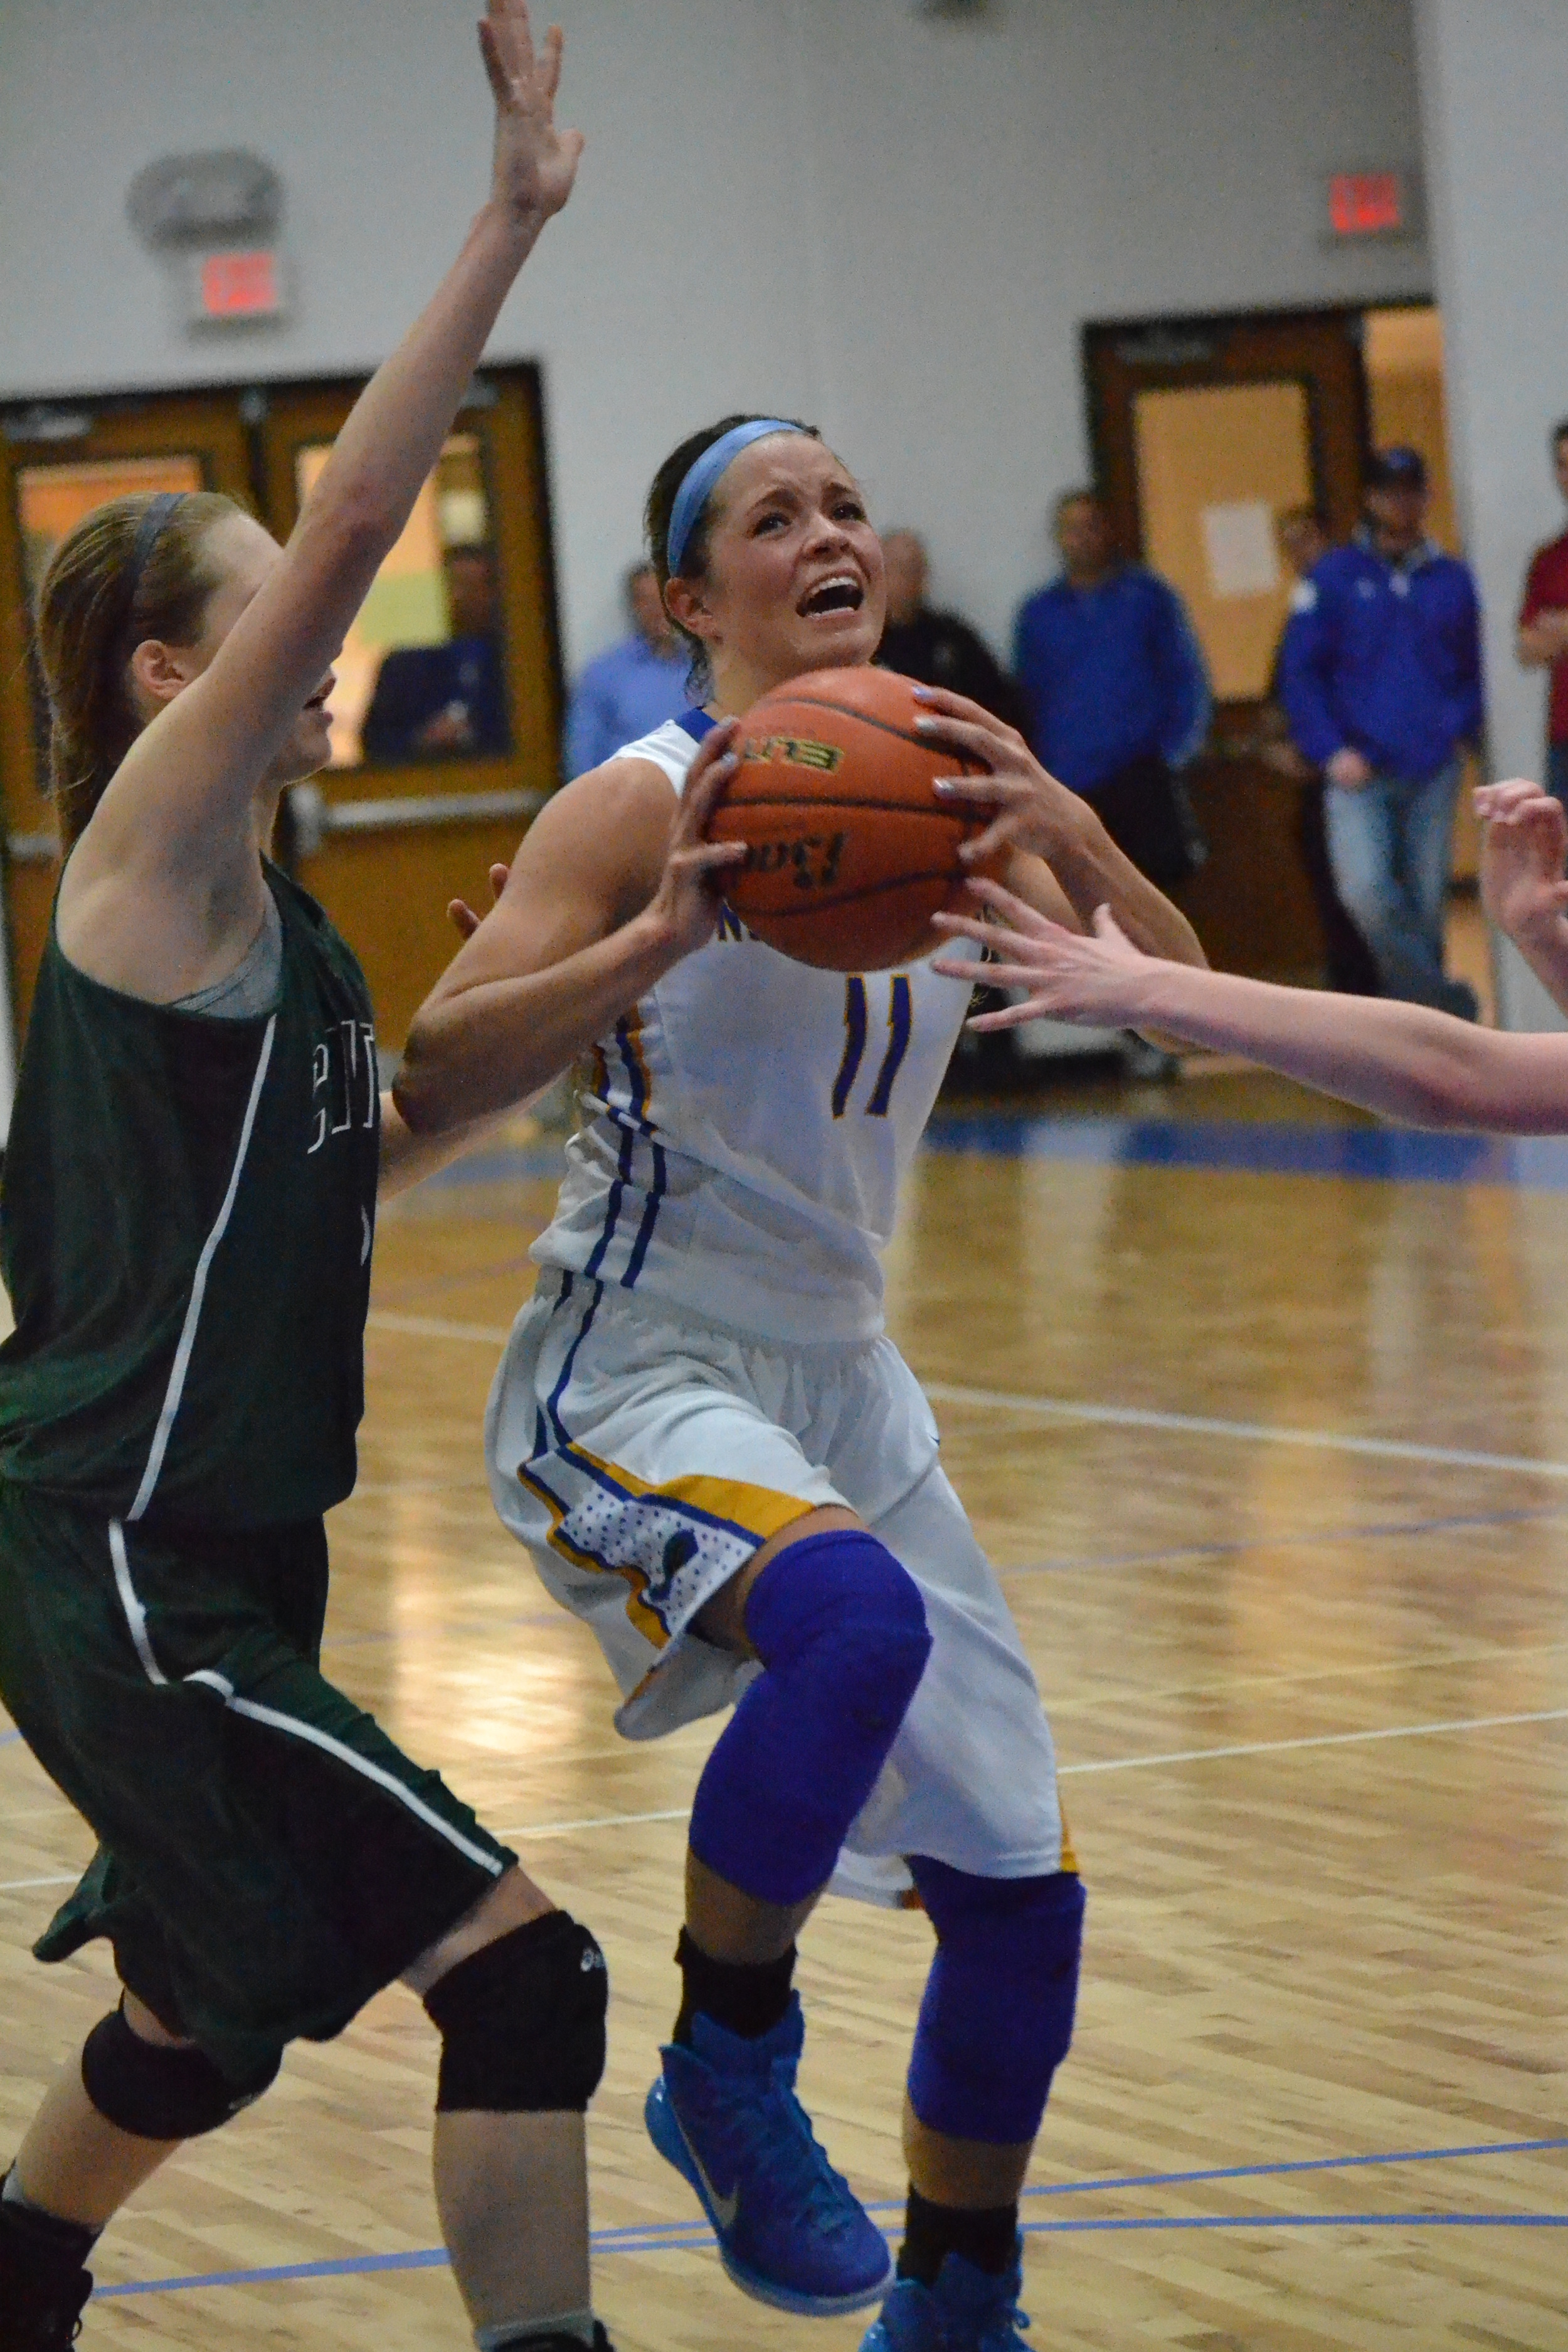 (Photo by Bev White) Kylie Hasltead driving to the lane for a layup attempt.